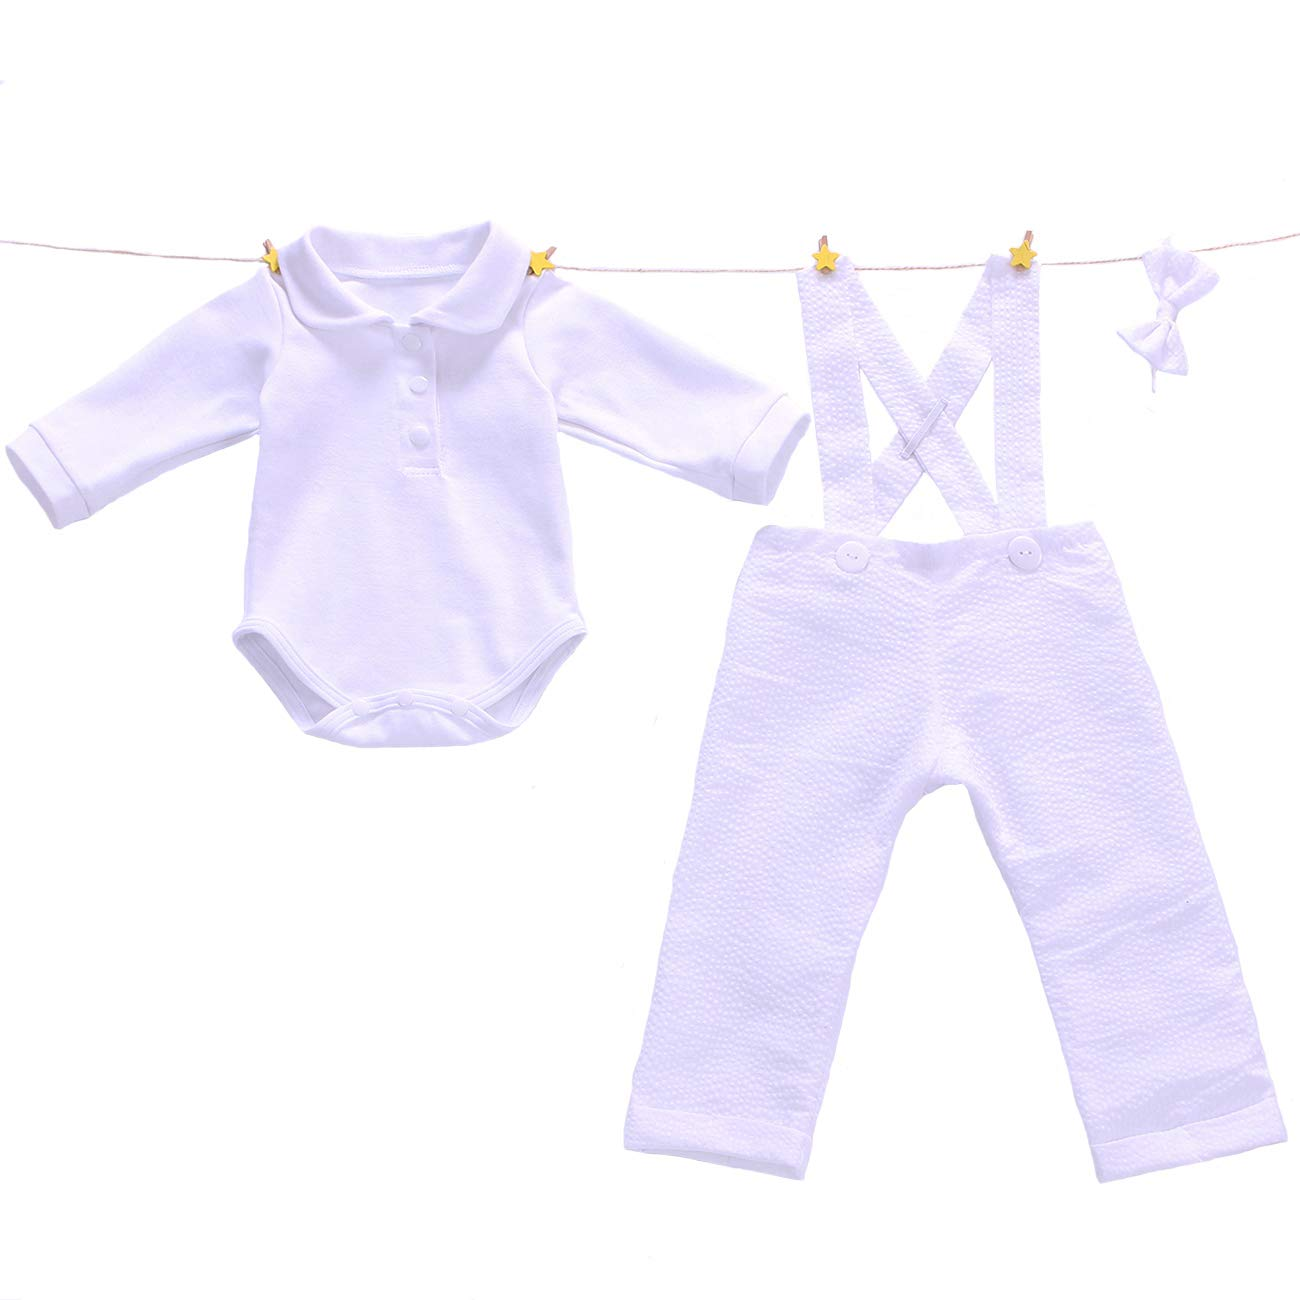 Euro Bear Lovely White Suit for Baby Boy Christening Outfit